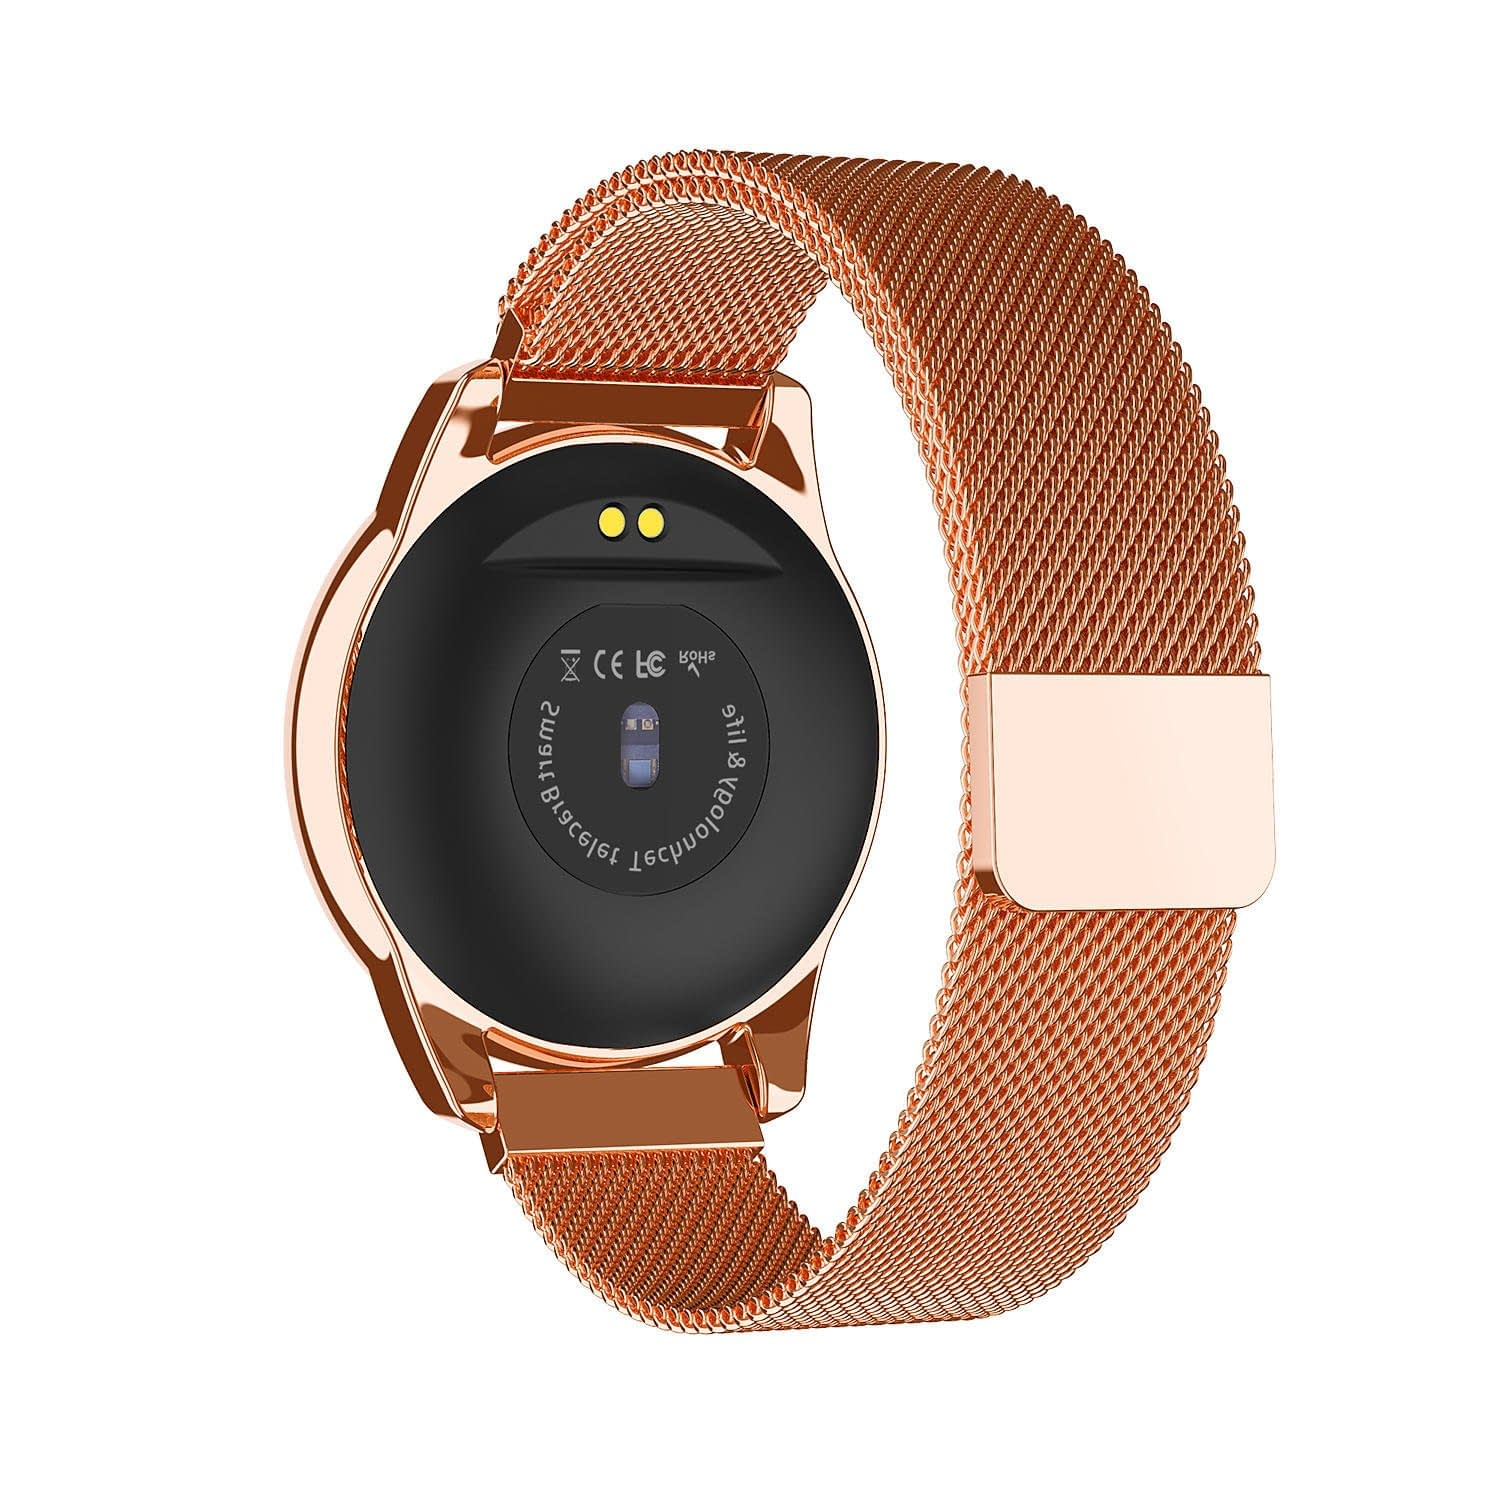 Watch 4 smart watch hd color screen wristband (17)